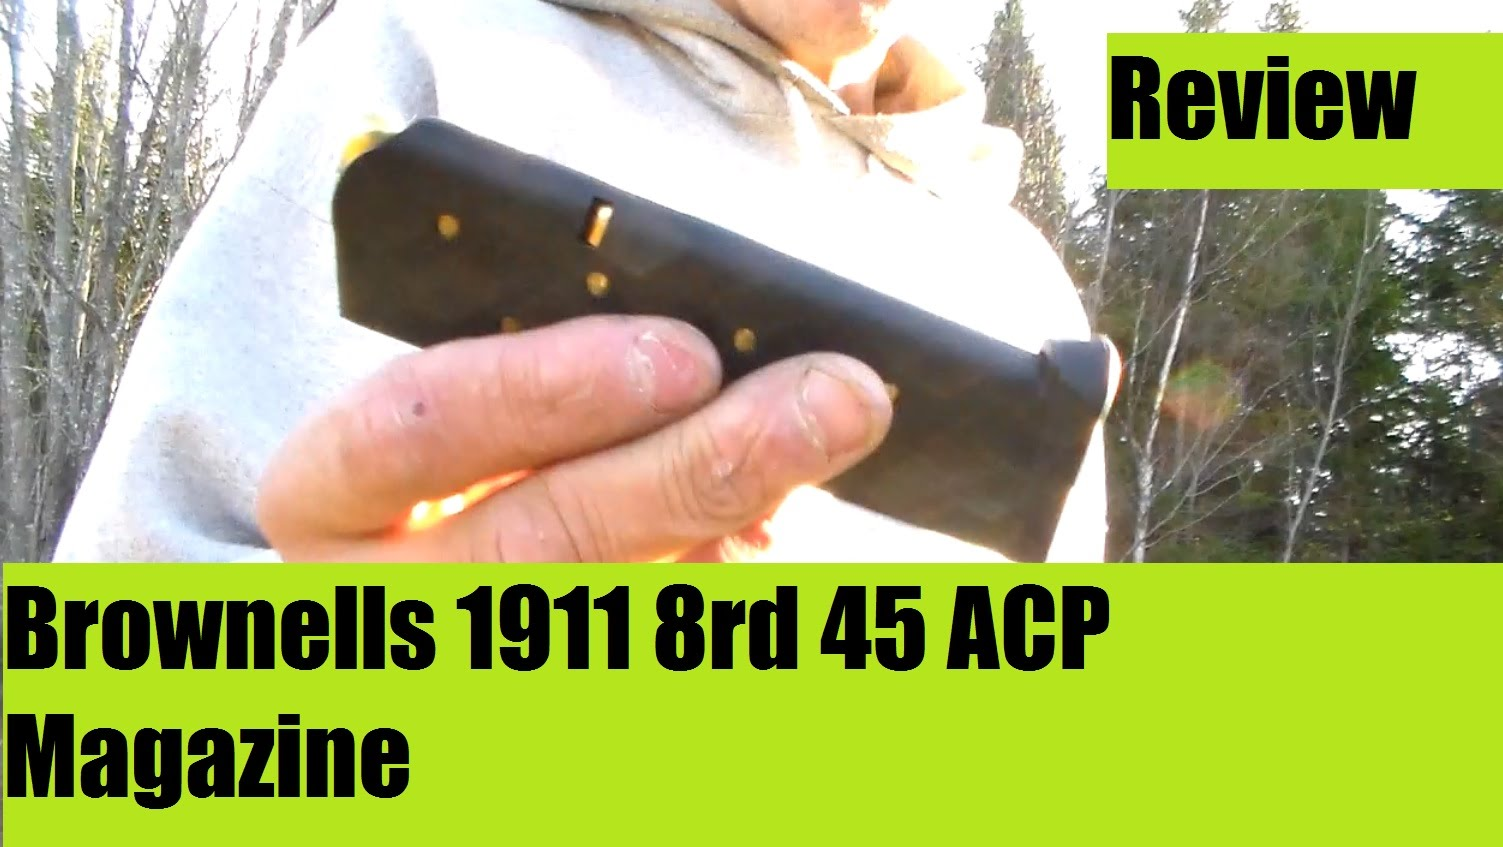 1911 45 ACP Brownells Magazine 8rds Review